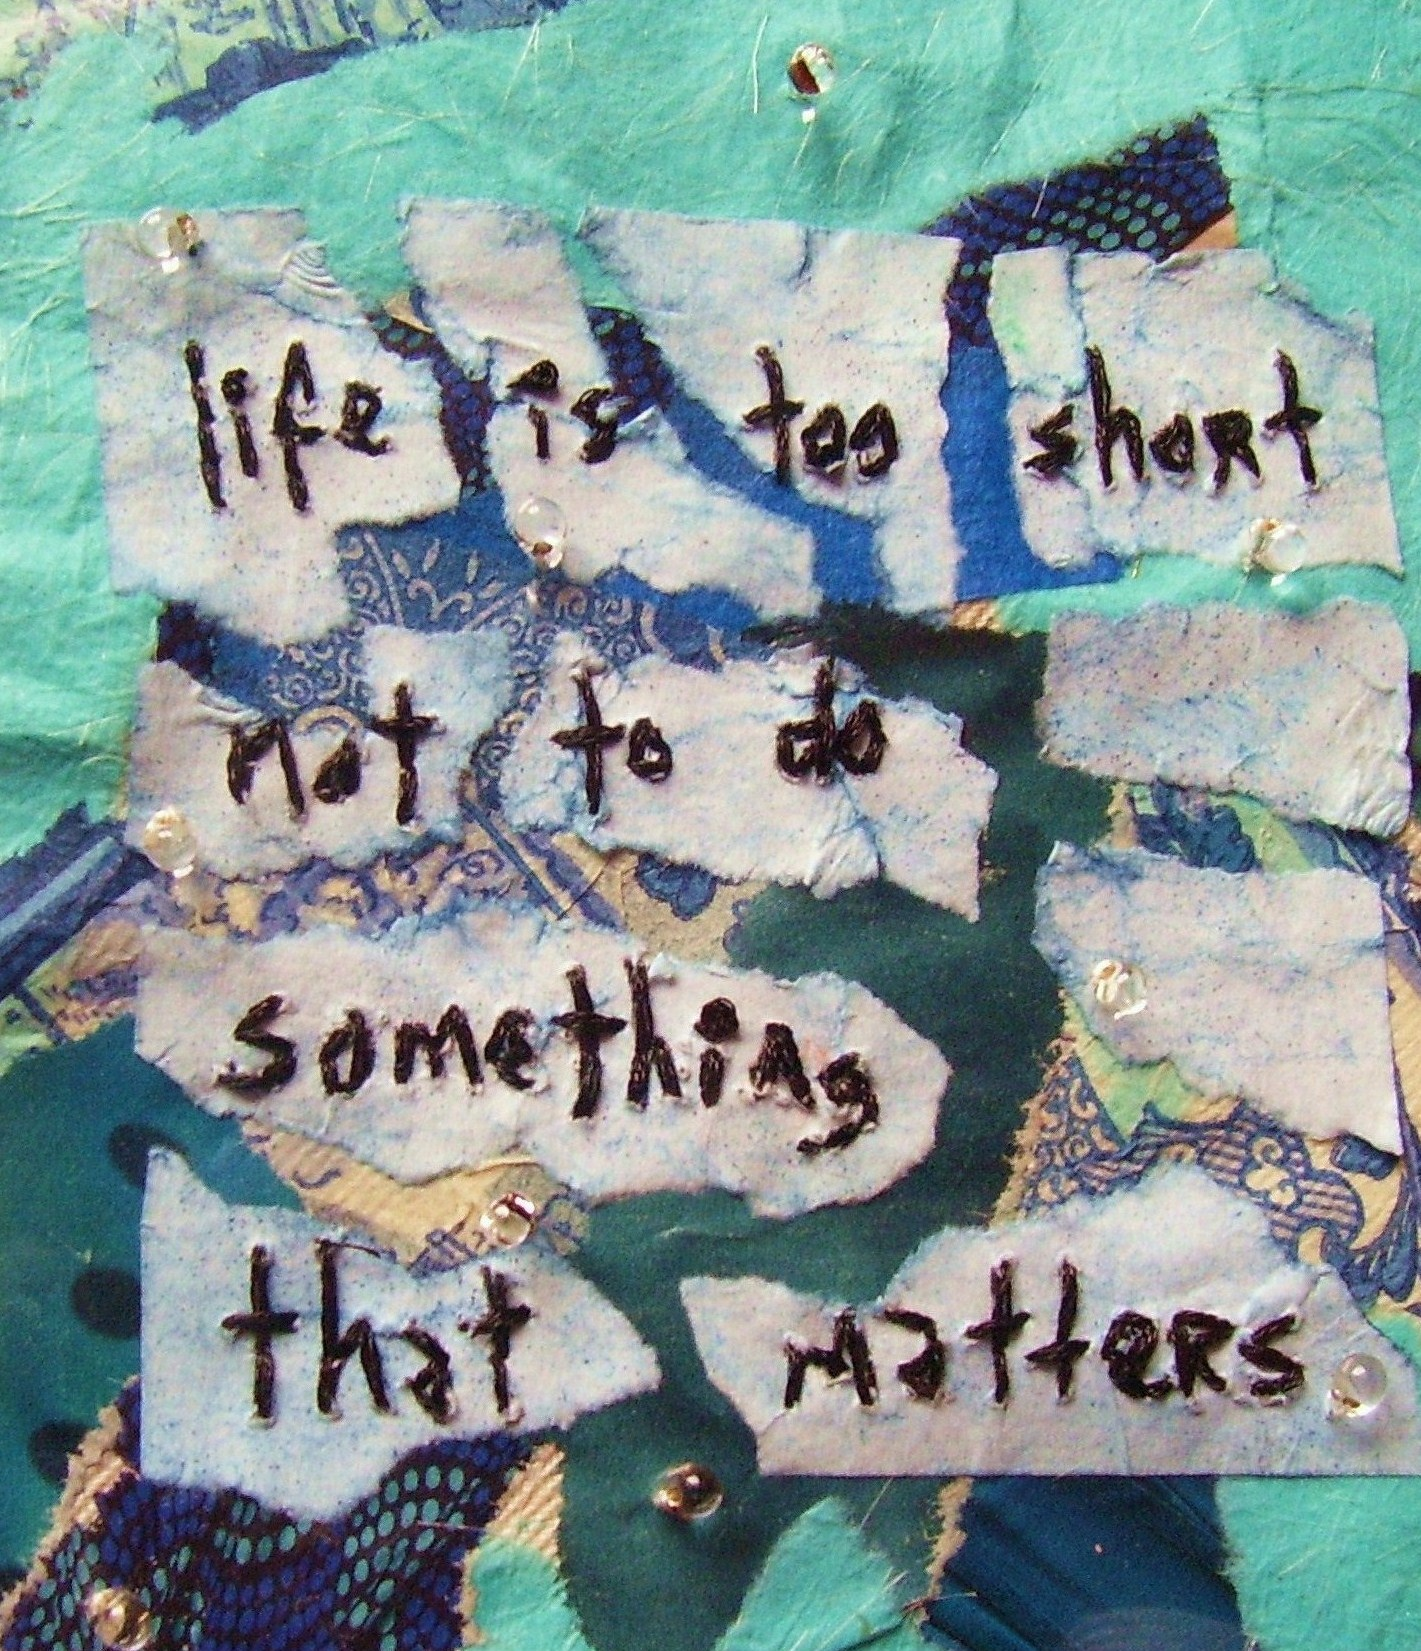 Life is too short artwork